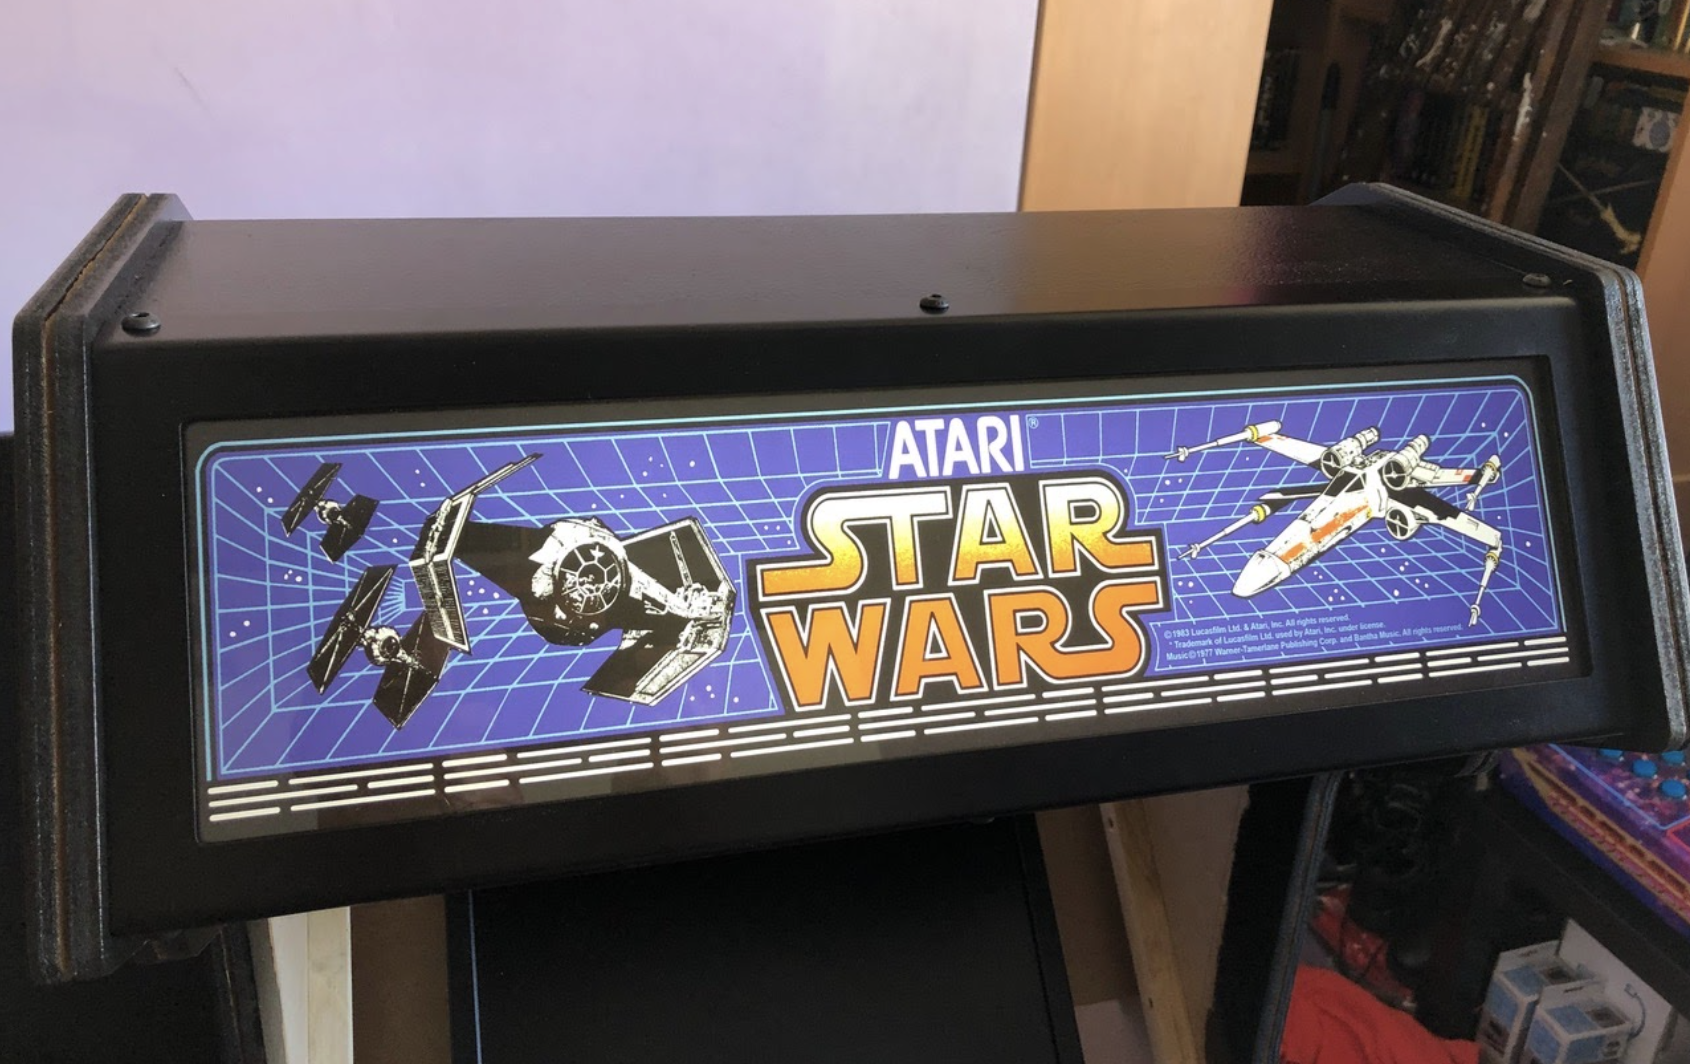 Star Wars Arcade Cabinet | The MagPi #105